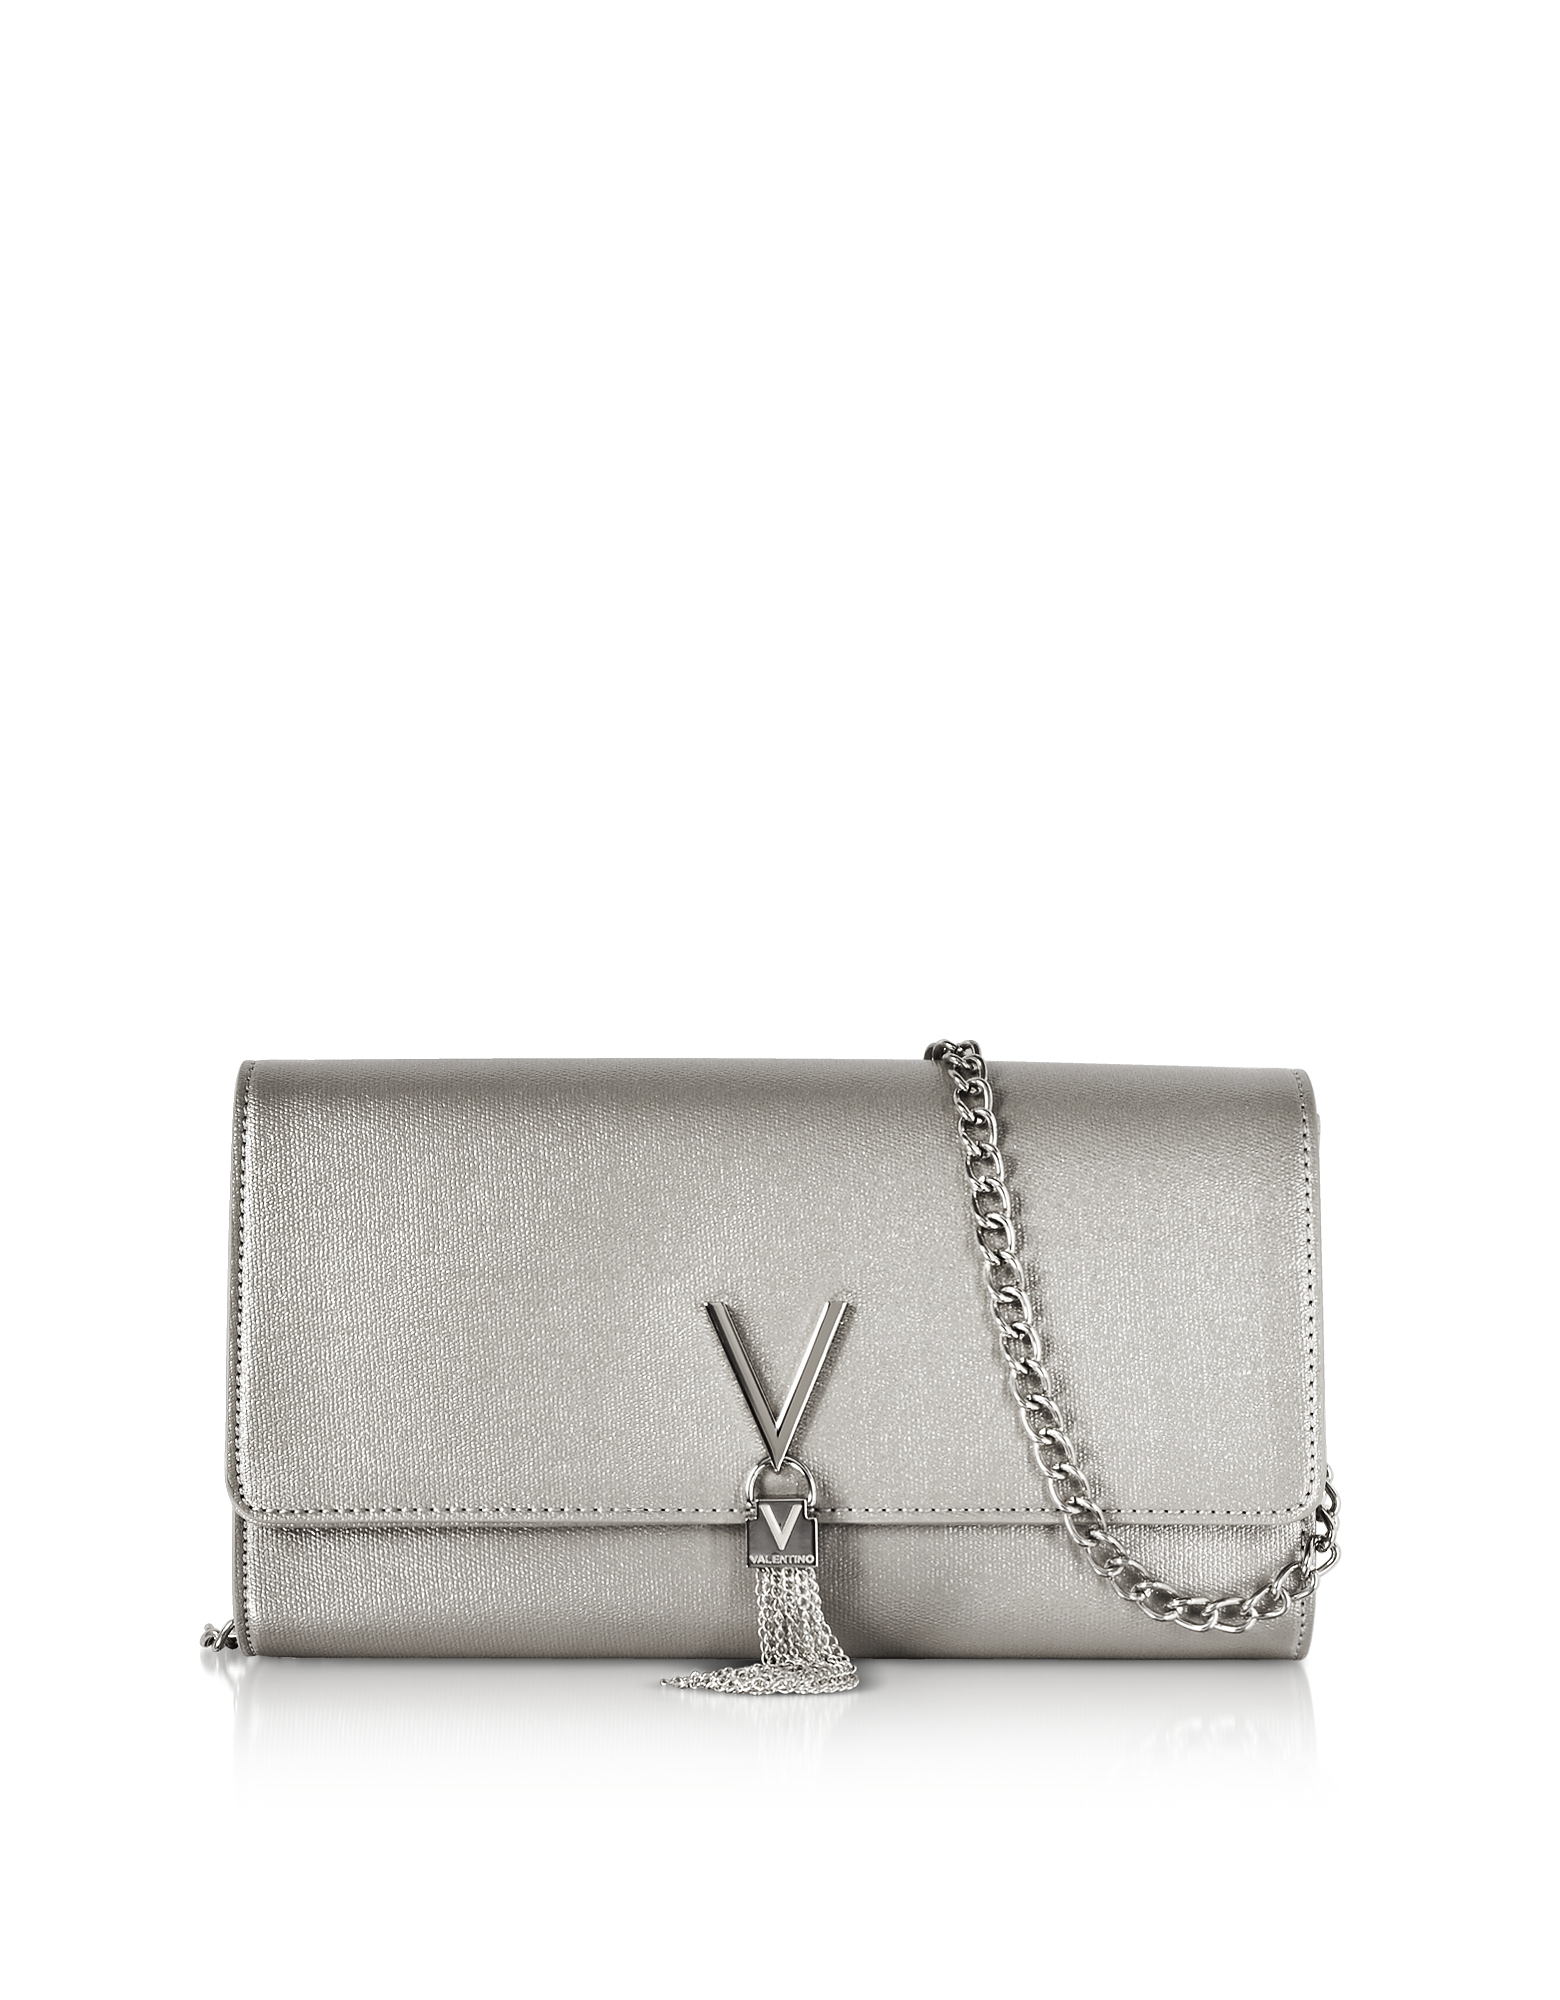 Image of Valentino by Mario Valentino Designer Handbags, Eco Grained Leather Marilyn Shoulder Bag